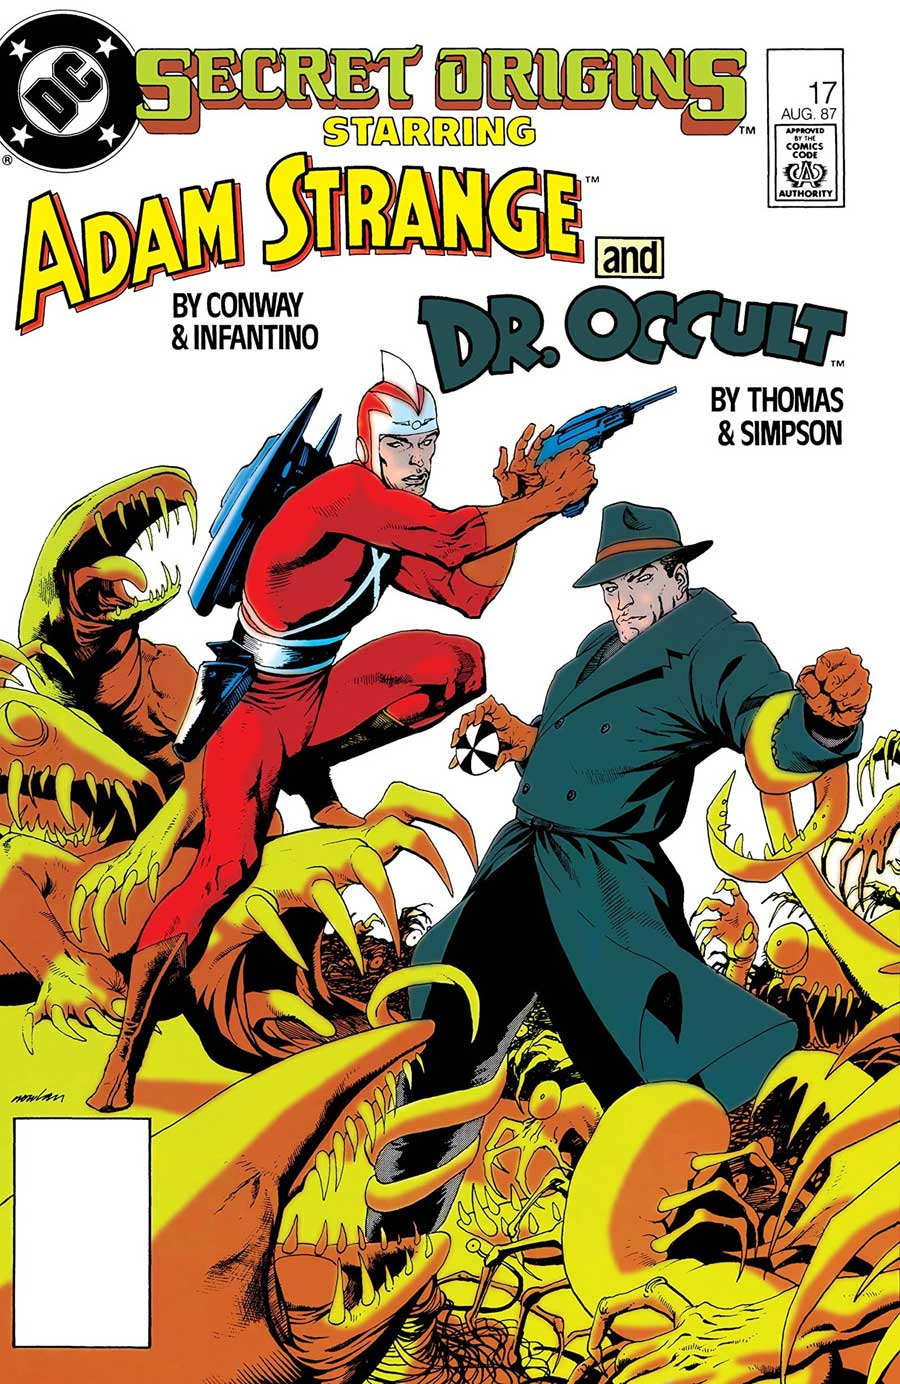 "Secret Origins Vol. 2 #17 (August 1987): ""The Secret Origin of Dr. Occult"" by Roy Thomas, E. Nelson Bridwell, Howard Simpson, and Bob Lewis"